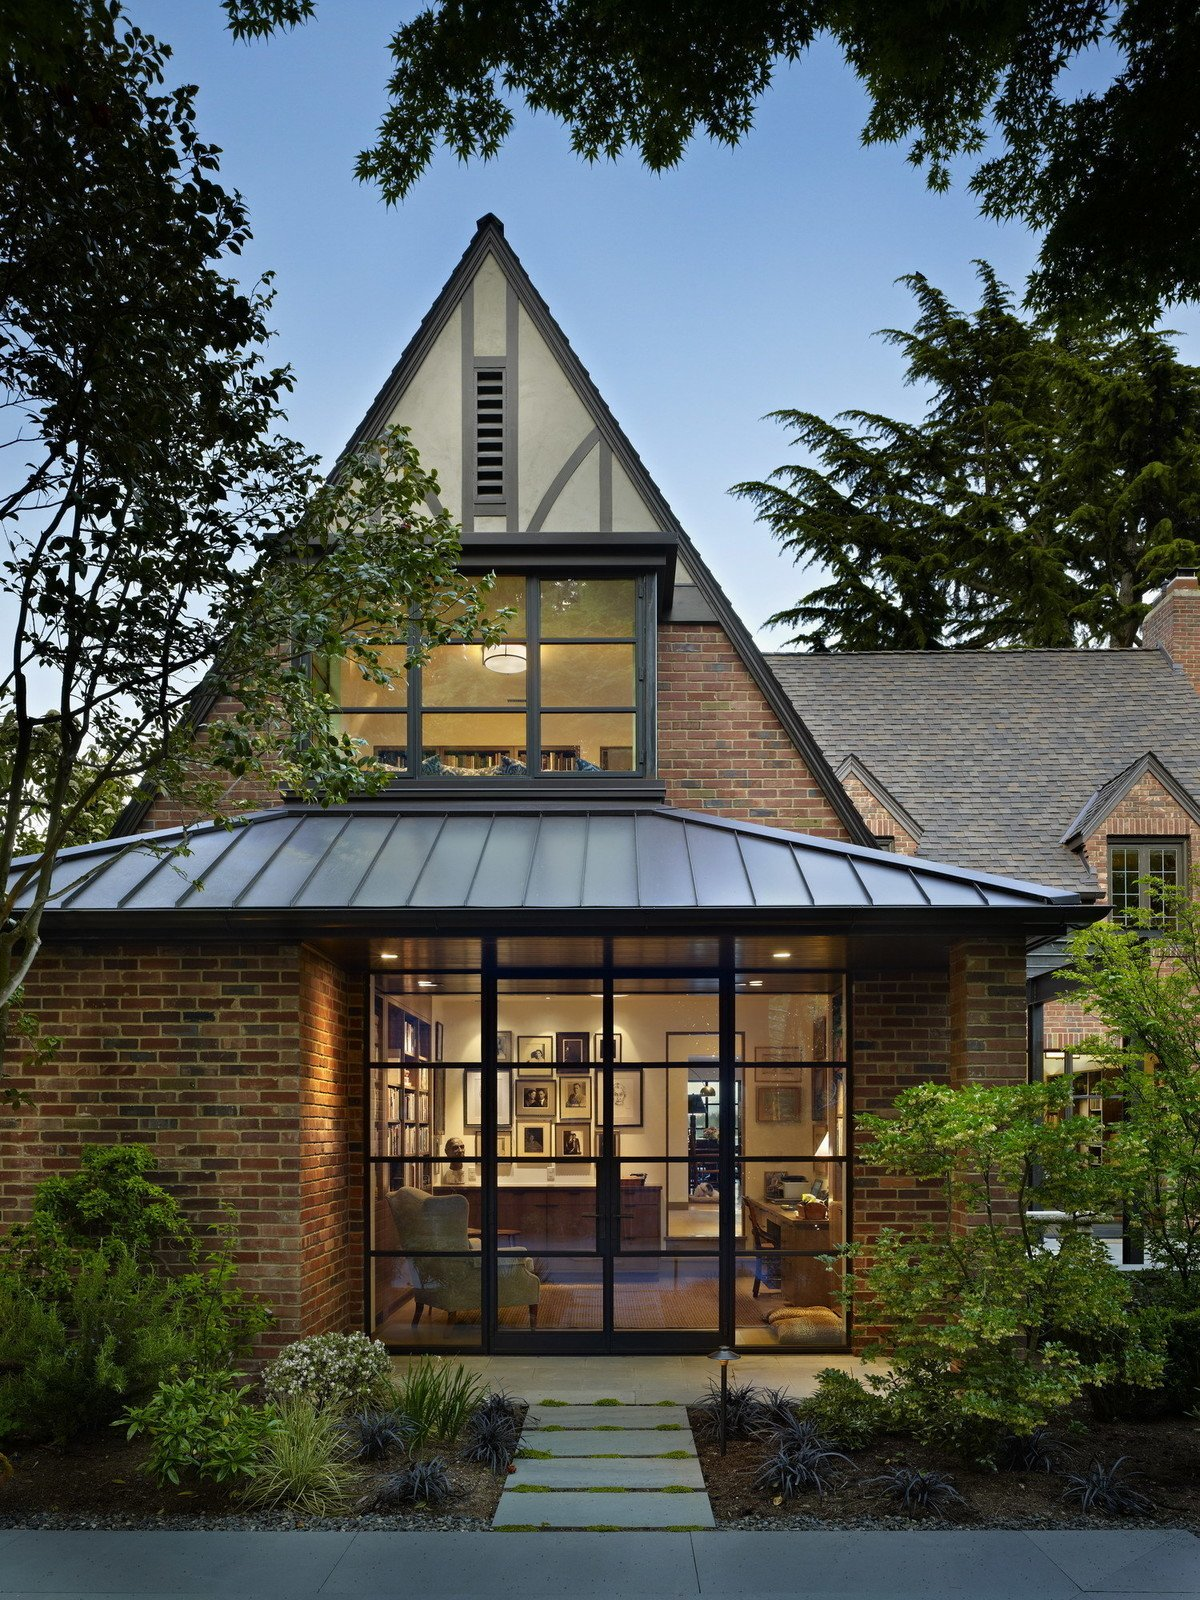 This whole-house remodel gives a venerable brick Tudor home a modern twist. Designed for two book (and dog!) lovers, it incorporates bookshelves and cozy seating areas throughout the house. Modern details complement traditional elements while steel windows, doors and exposed structure open the interior to light and views. The exterior features a 'secret garden', sunroom and terrace that overlook Lake Washington.